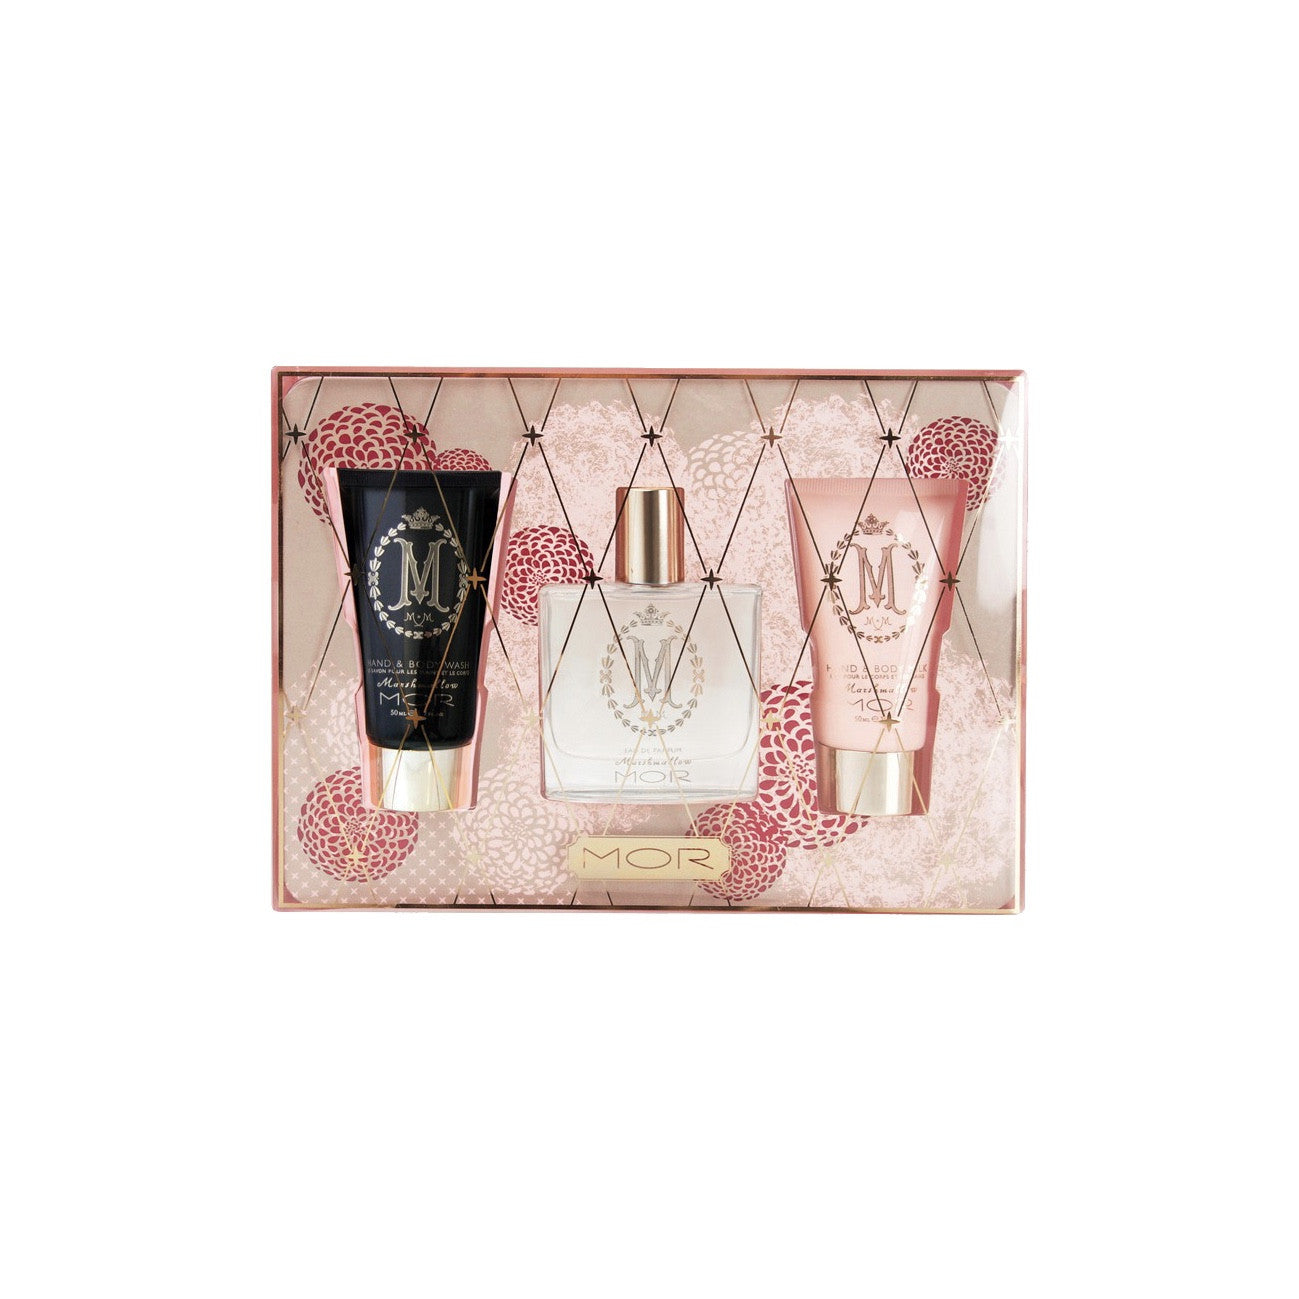 "Mor ""Marshmallow Moments""- Perfume,Hand Cream and Body Wash Gift Set, MOR- Lothantique MOR, Putti Fine Furnishings"